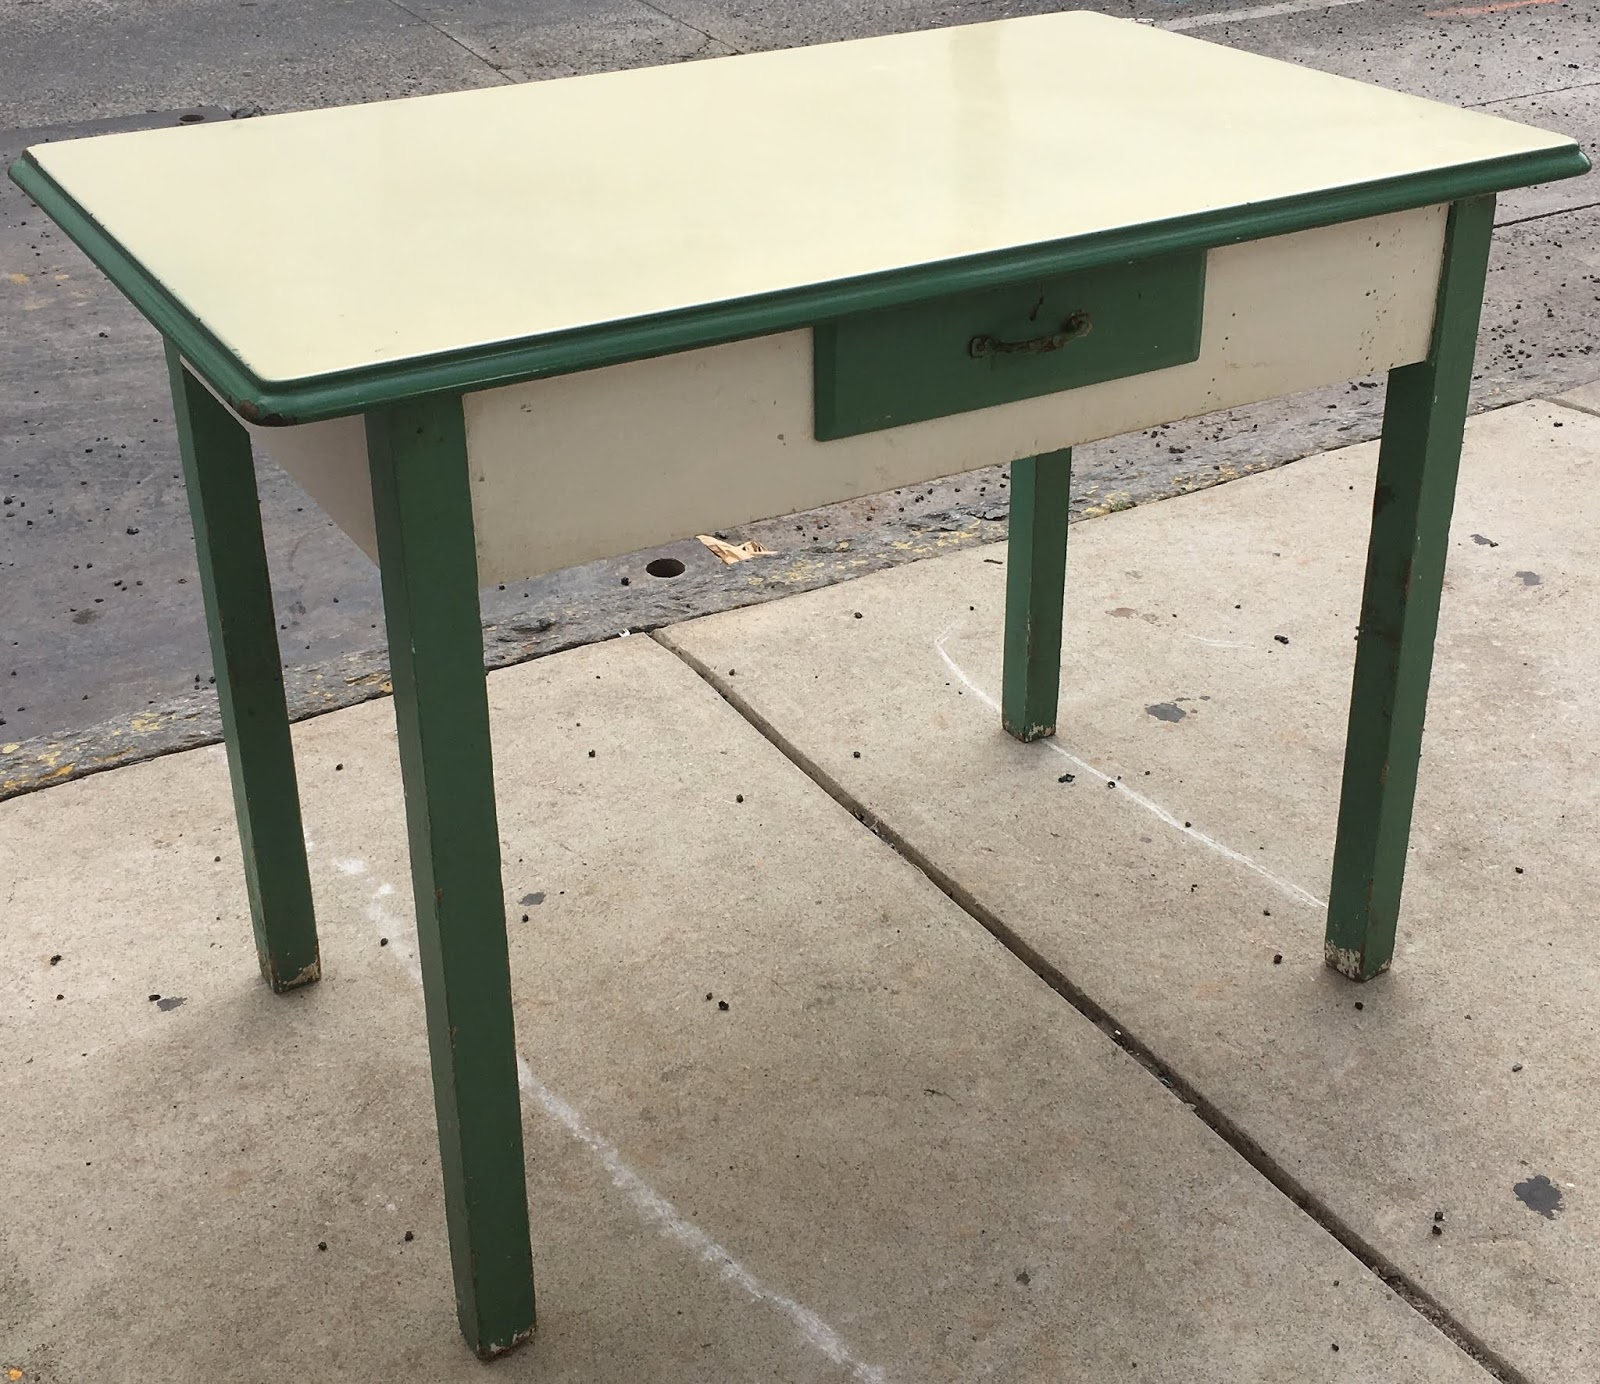 Uhuru Furniture Collectibles Enamel Top 1940s Kitchen Table 95 Sold